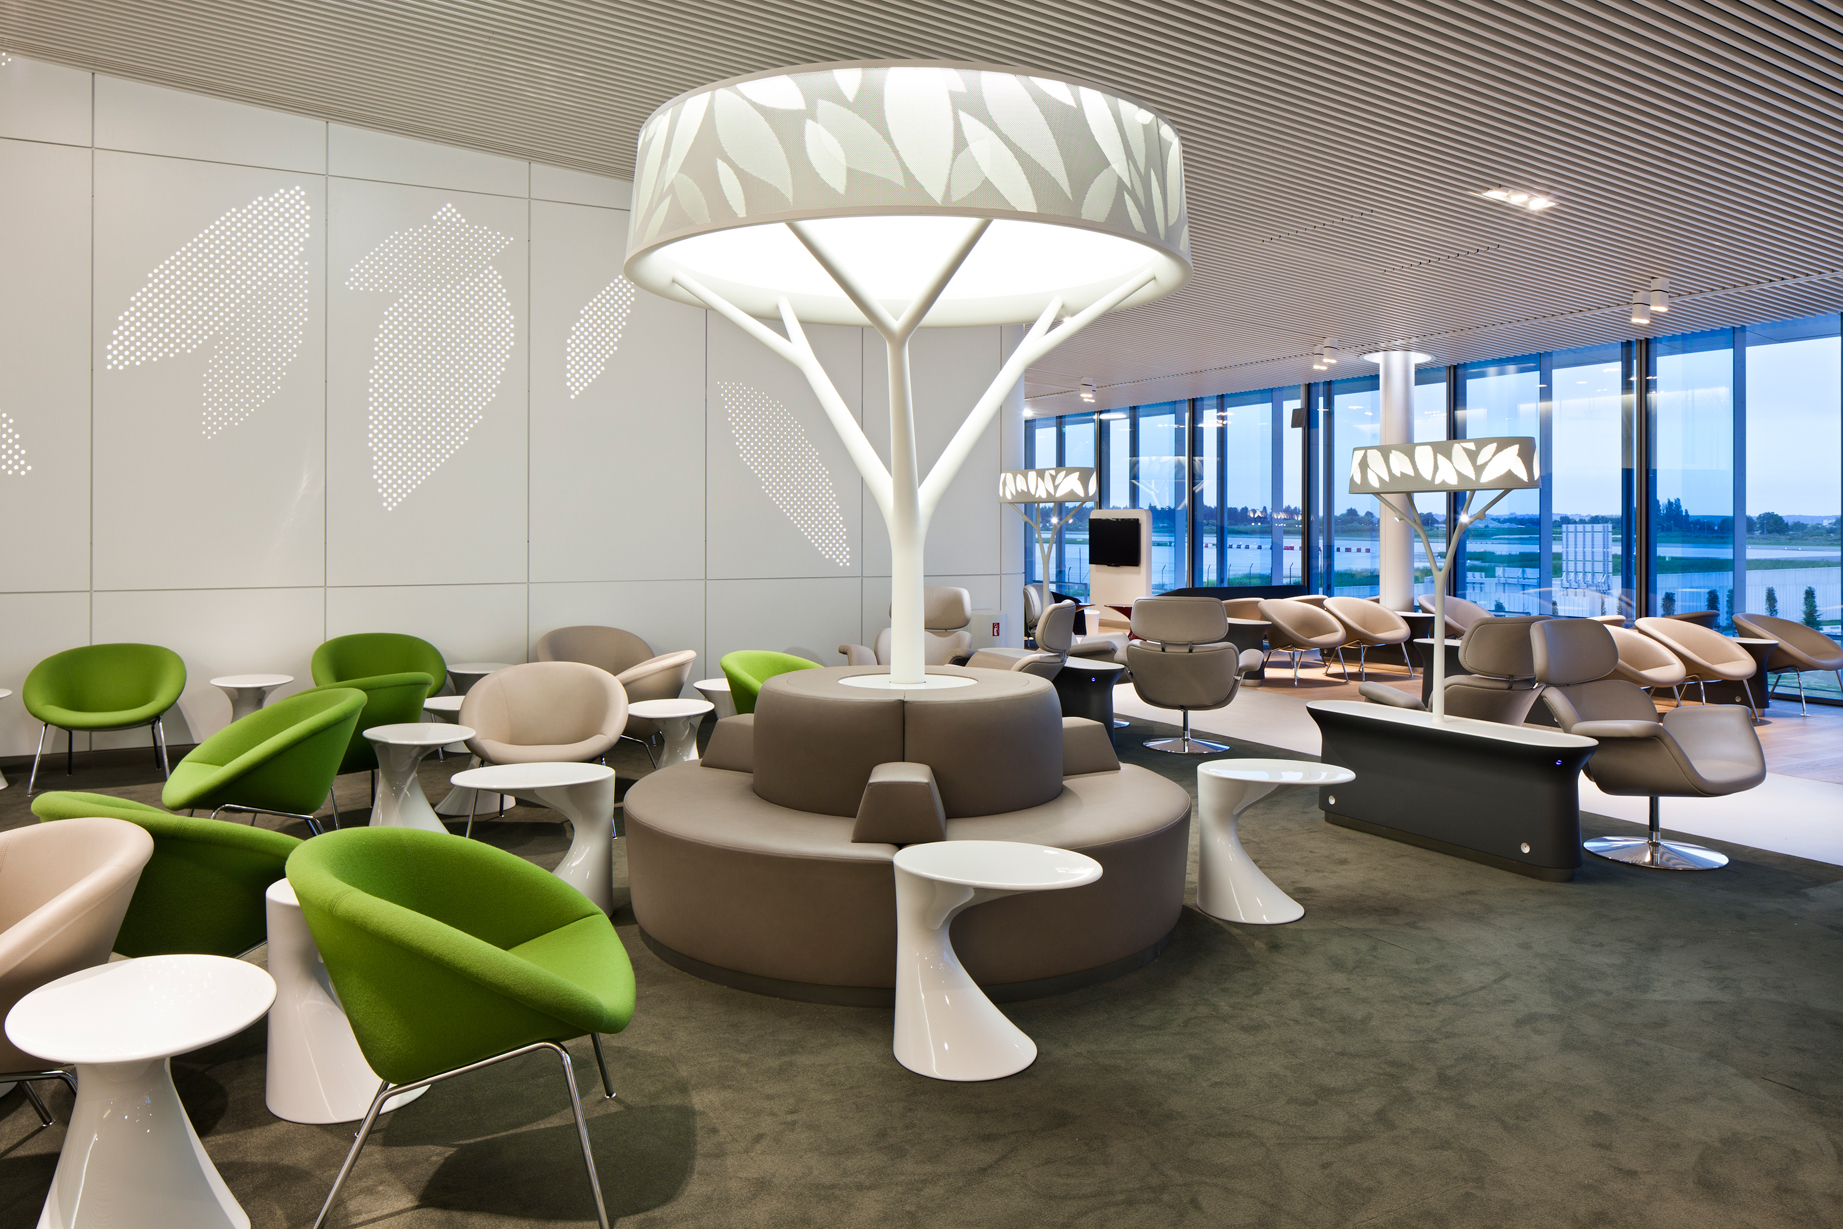 Thedesignair top 10 airport lounges 2012 thedesignair - Design lounges ...